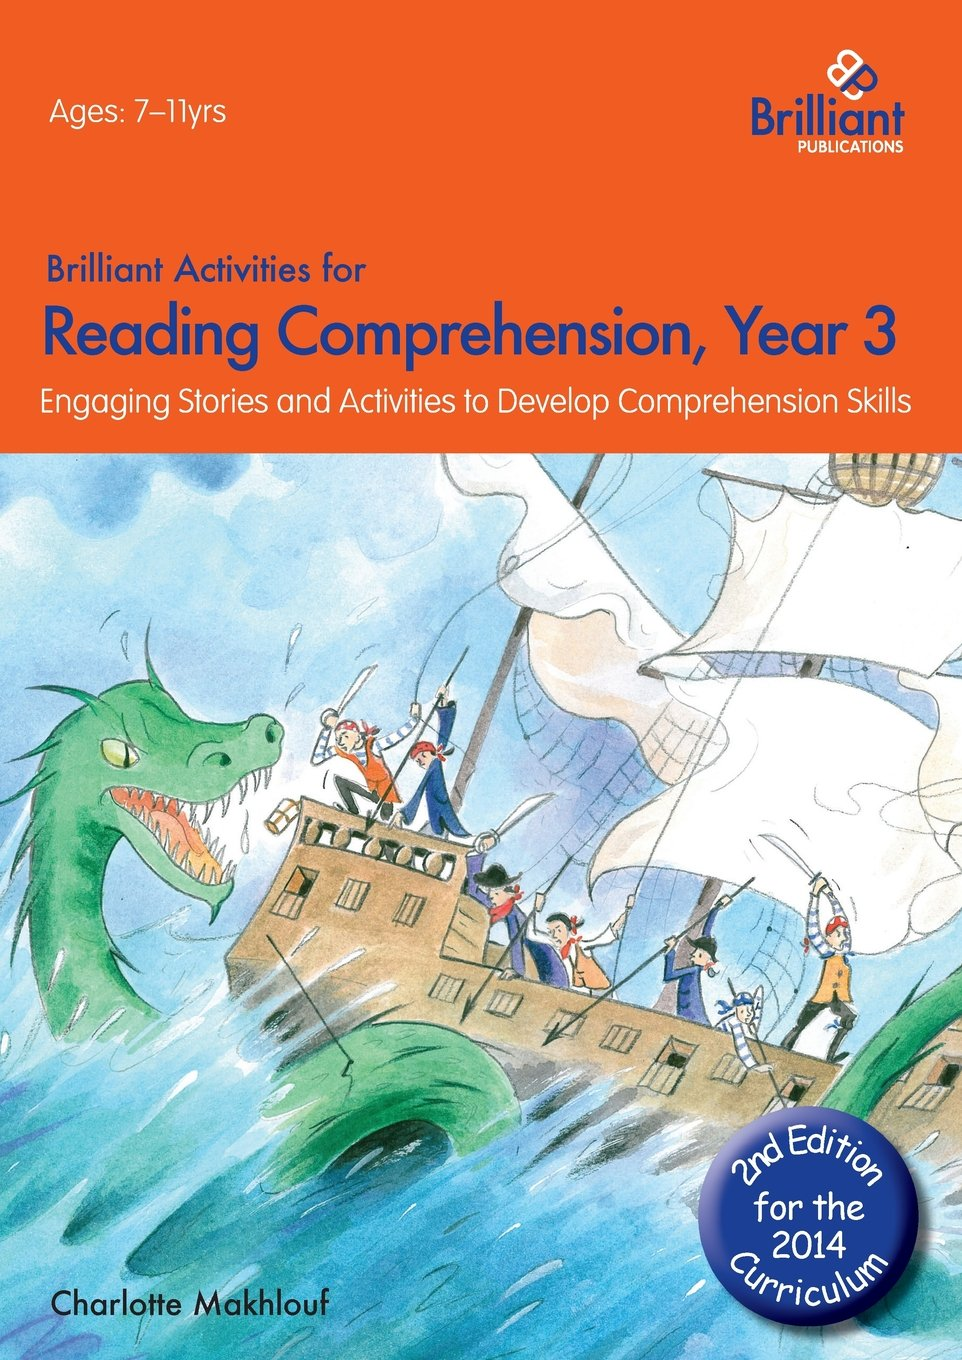 Worksheets Cross-curricular Reading Comprehension Worksheets brilliant activities for reading comprehension year 3 2nd edition amazon co uk charlotte makhlouf books